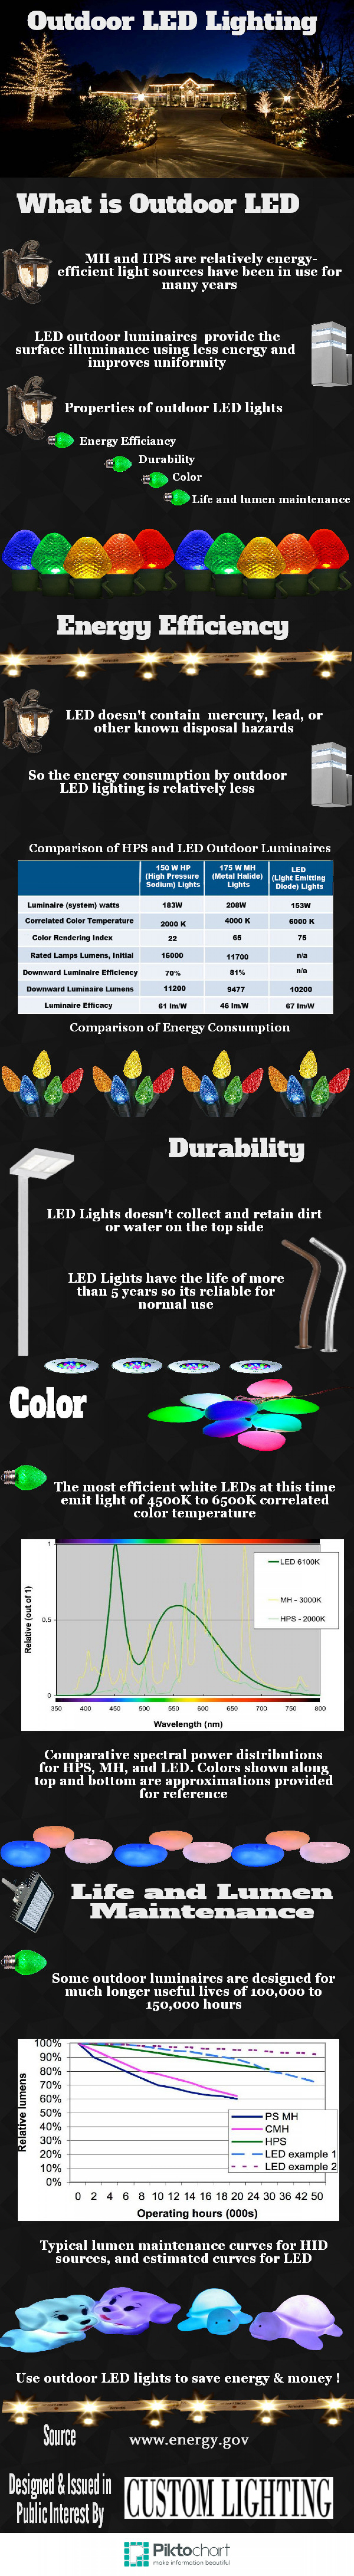 Outdoor LED Lighting Infographic